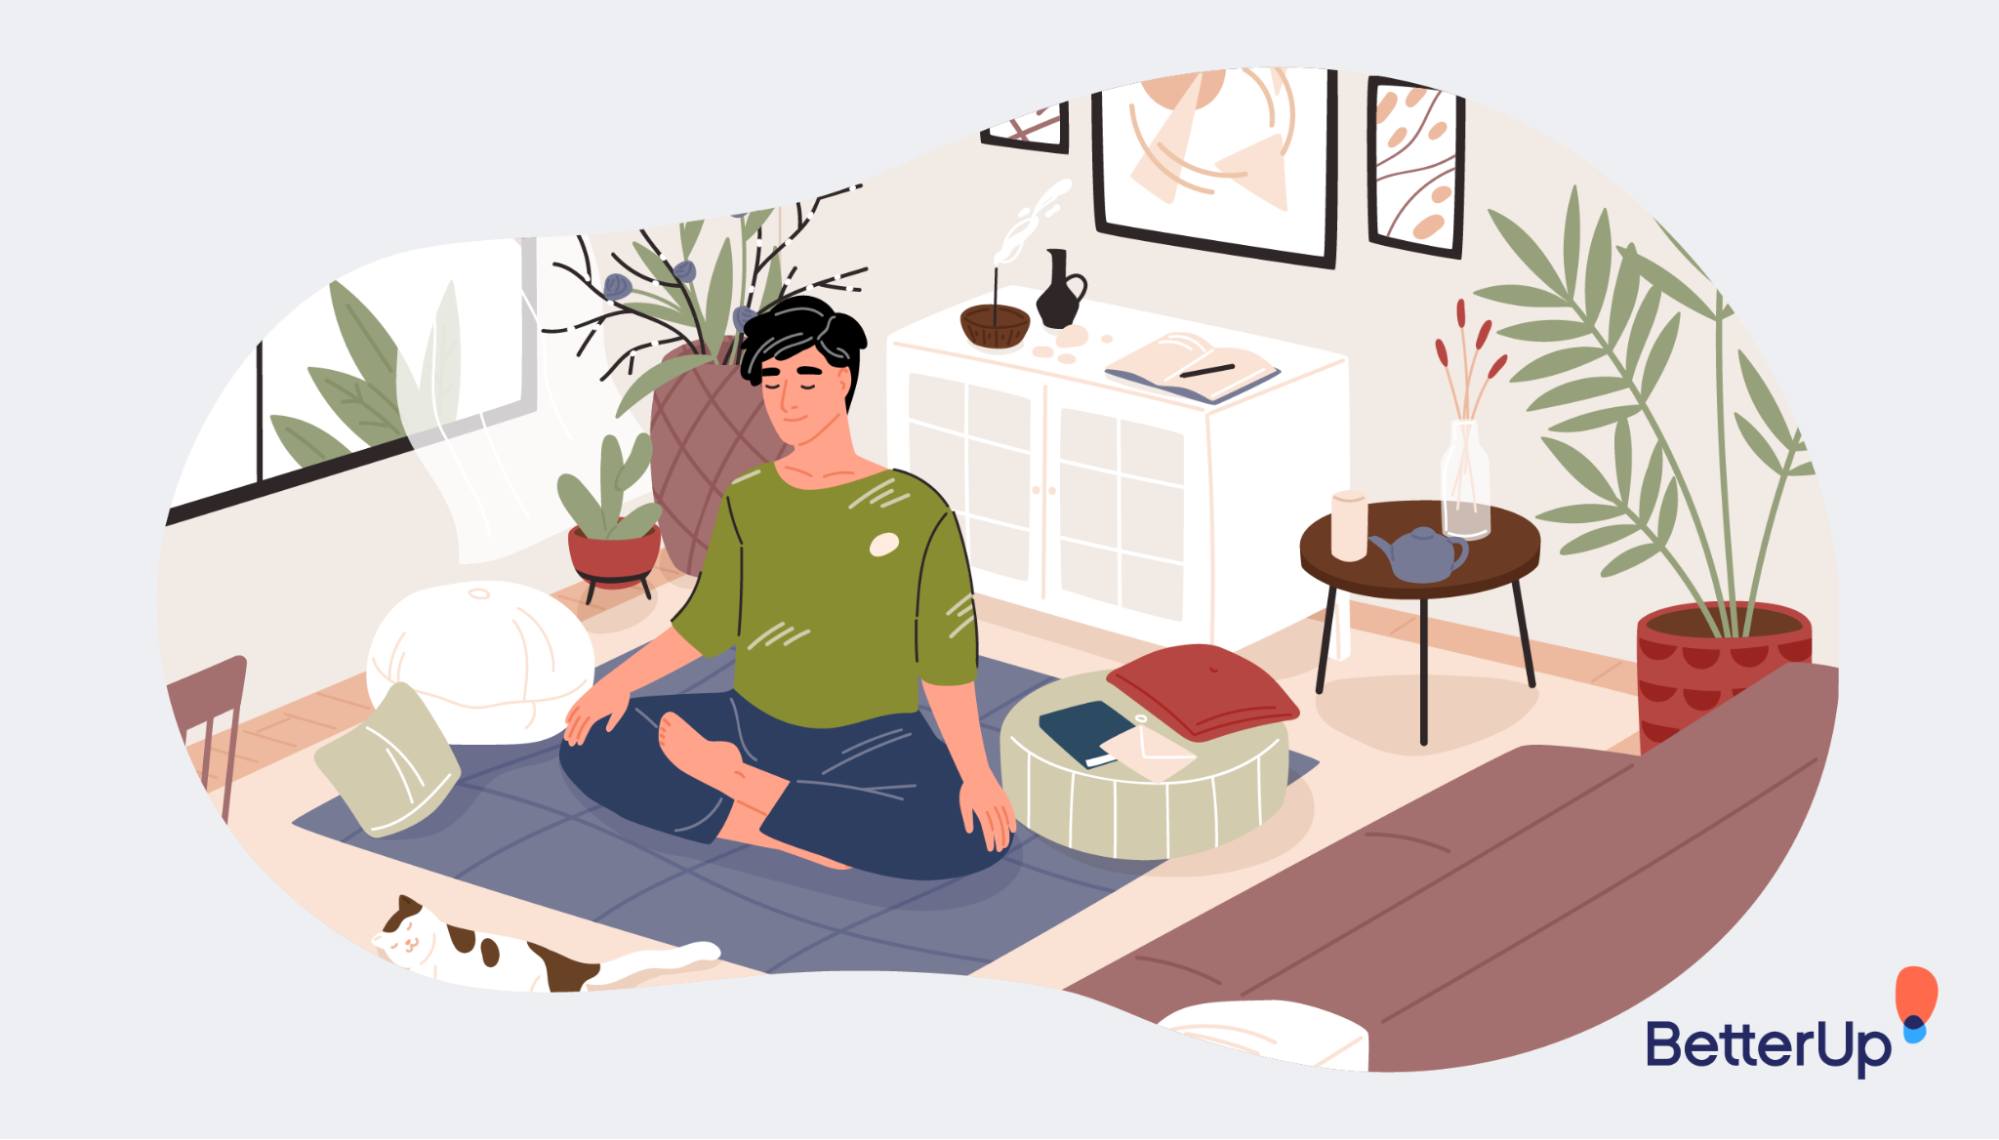 graphic-person-meditating-building-resilience